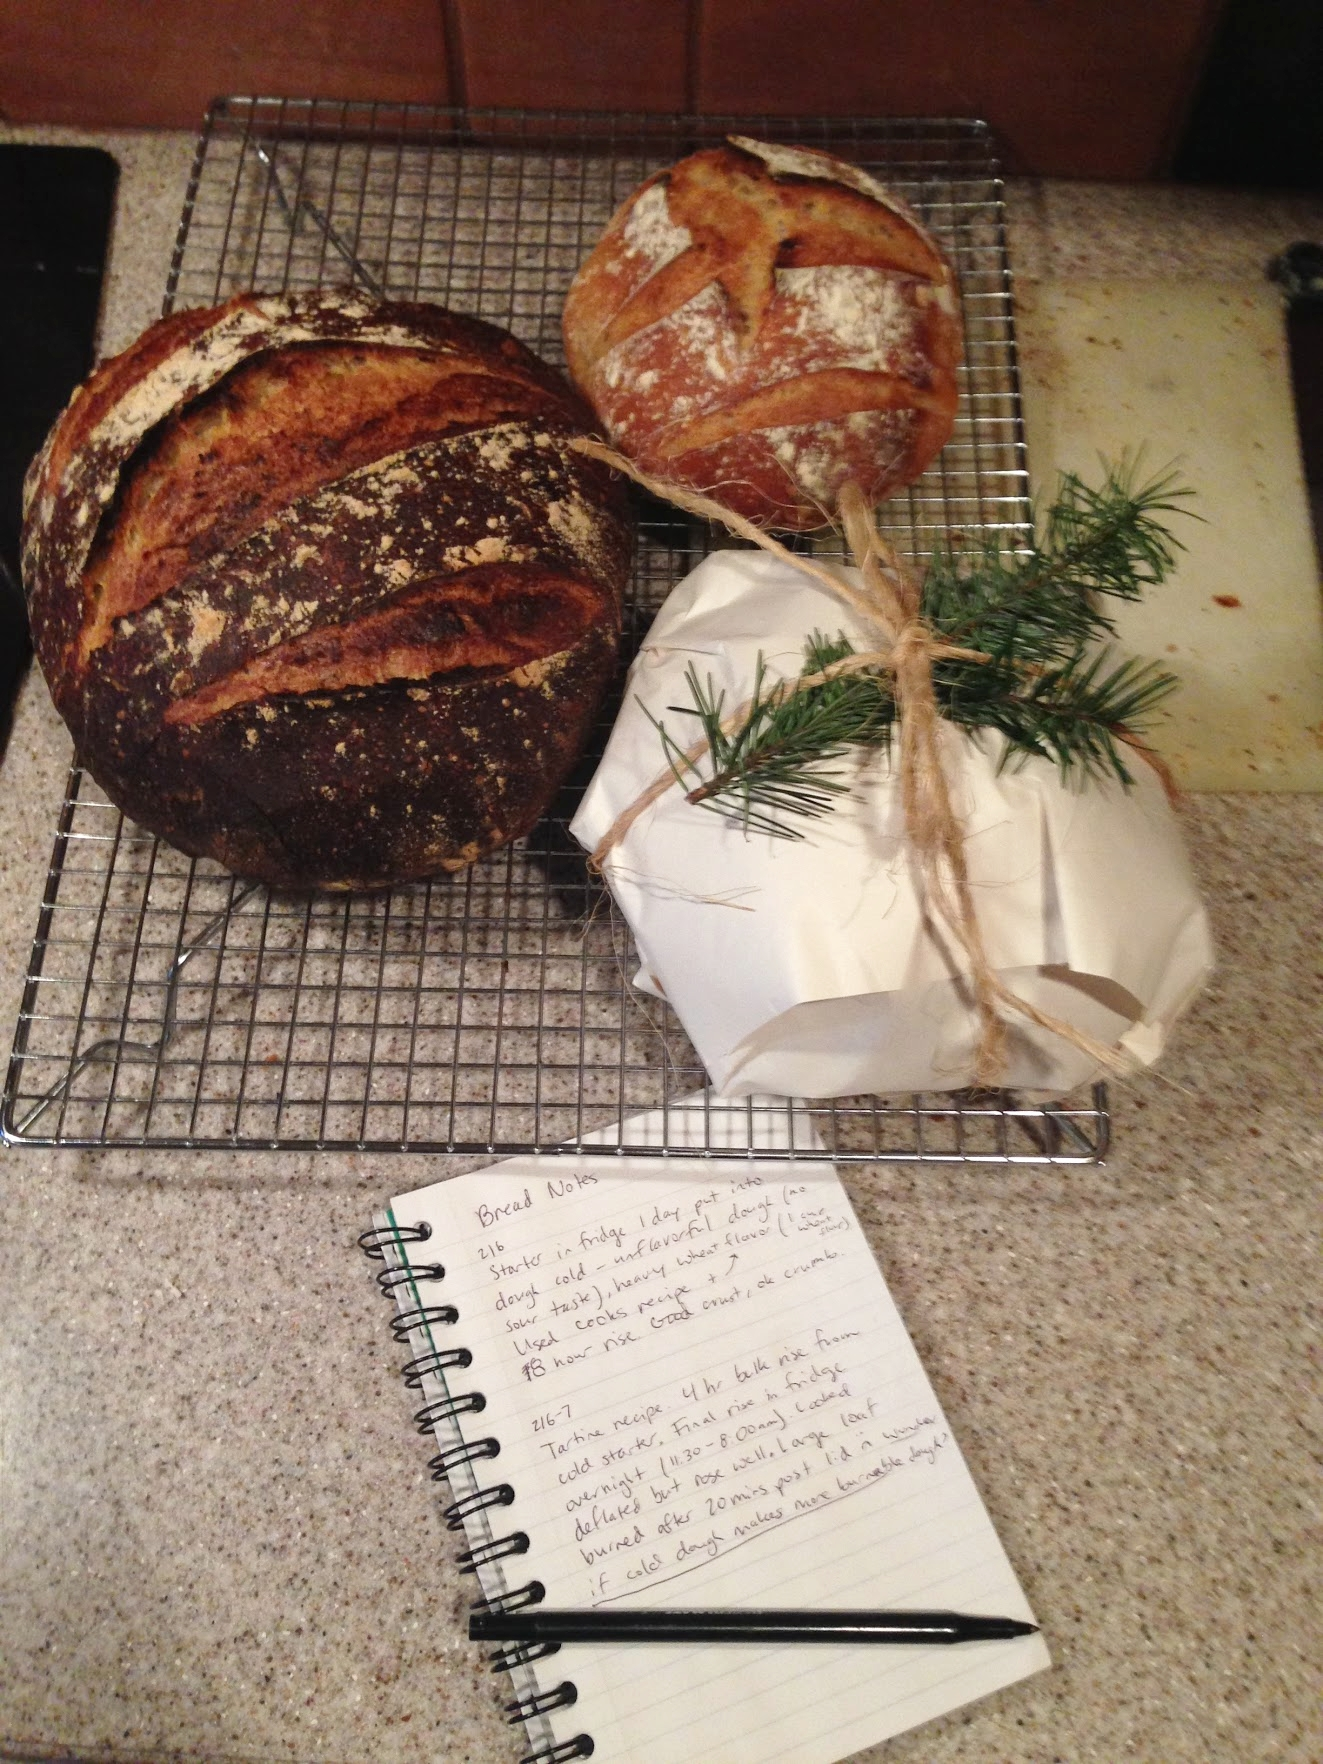 Tartine bread (one loaf gift-wrapped for a friend) and my bread journal